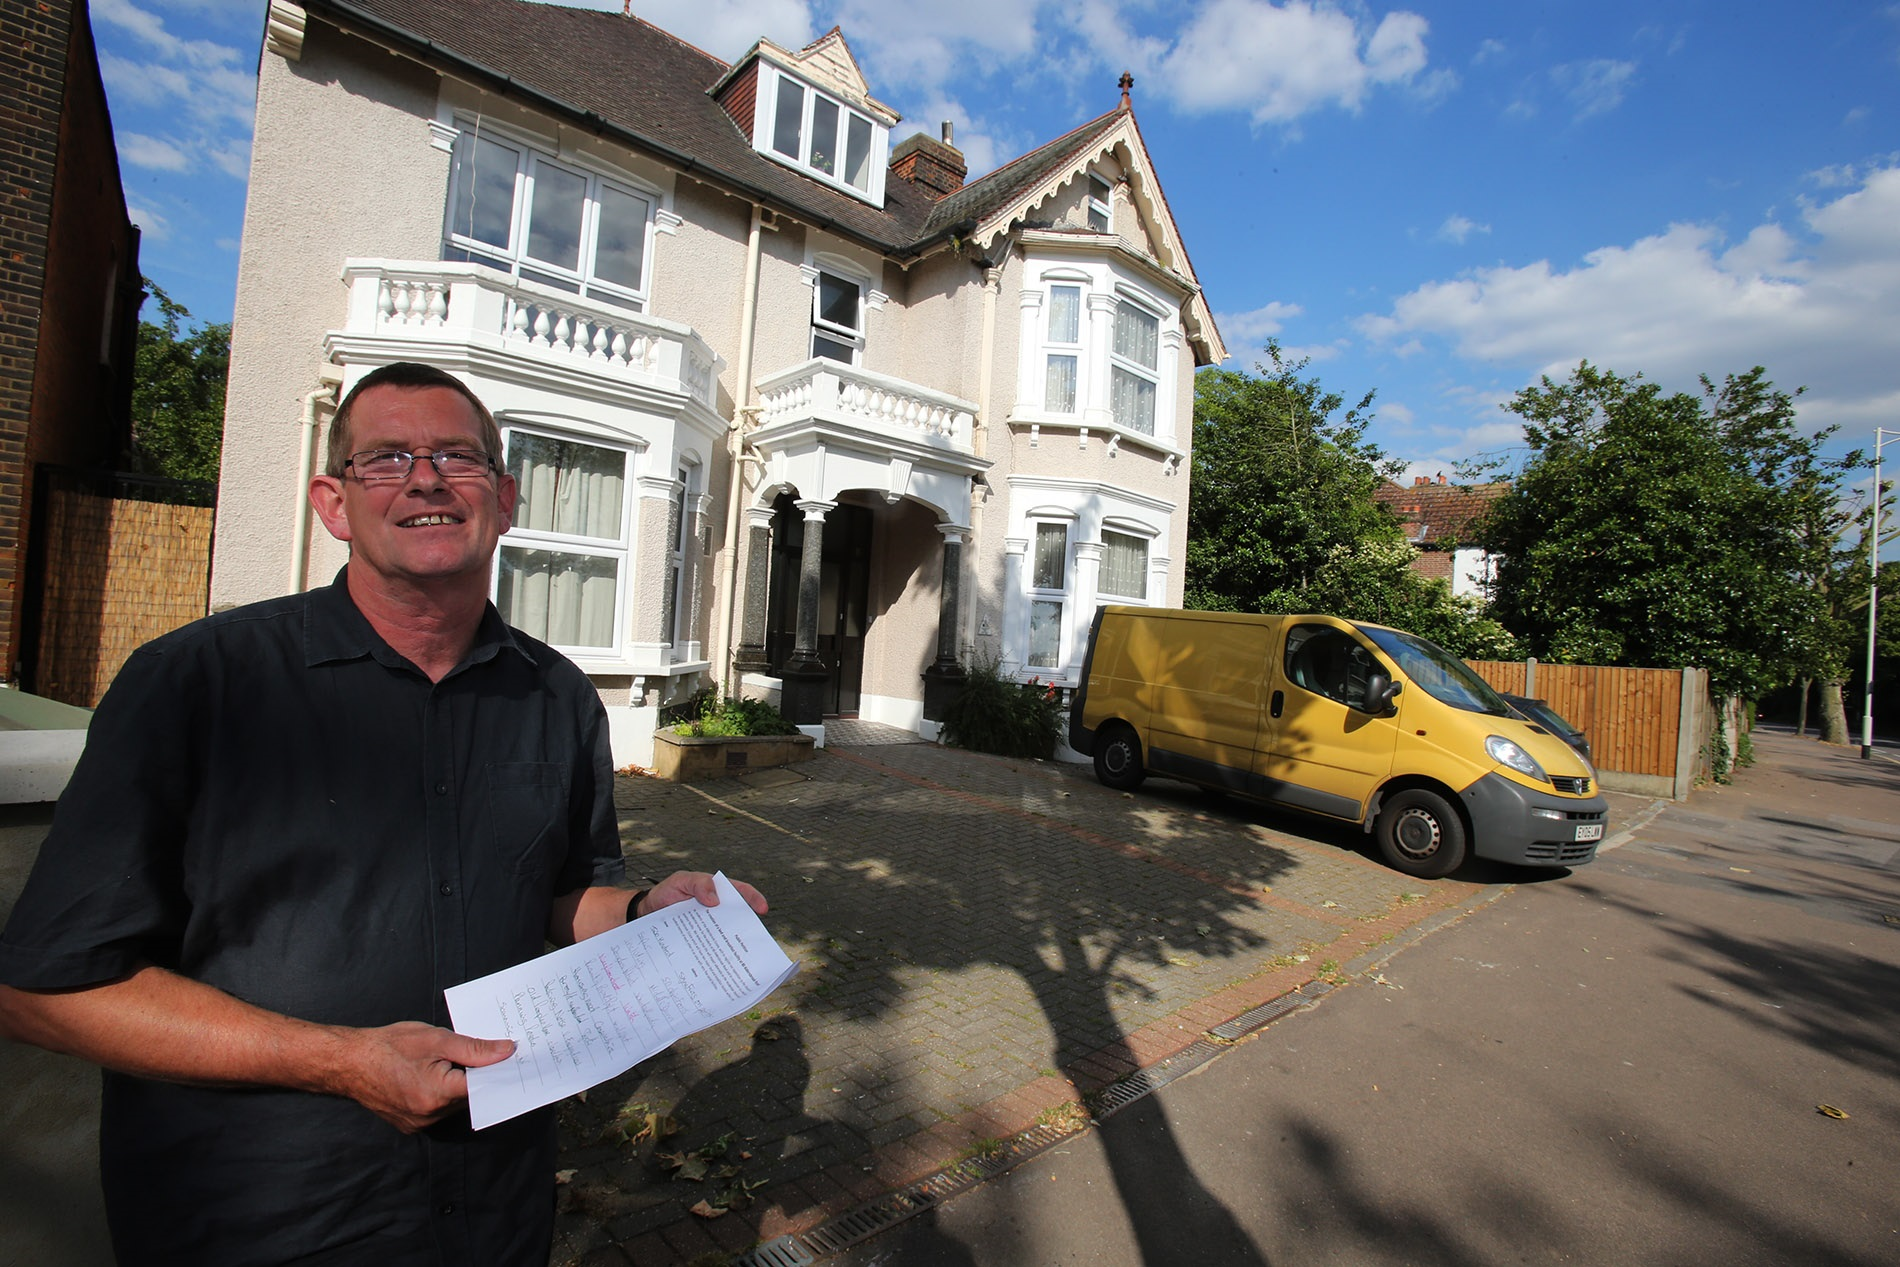 Tim Potter with the petition outside the prospective new bed and breakfast in Aldersbrook Road.